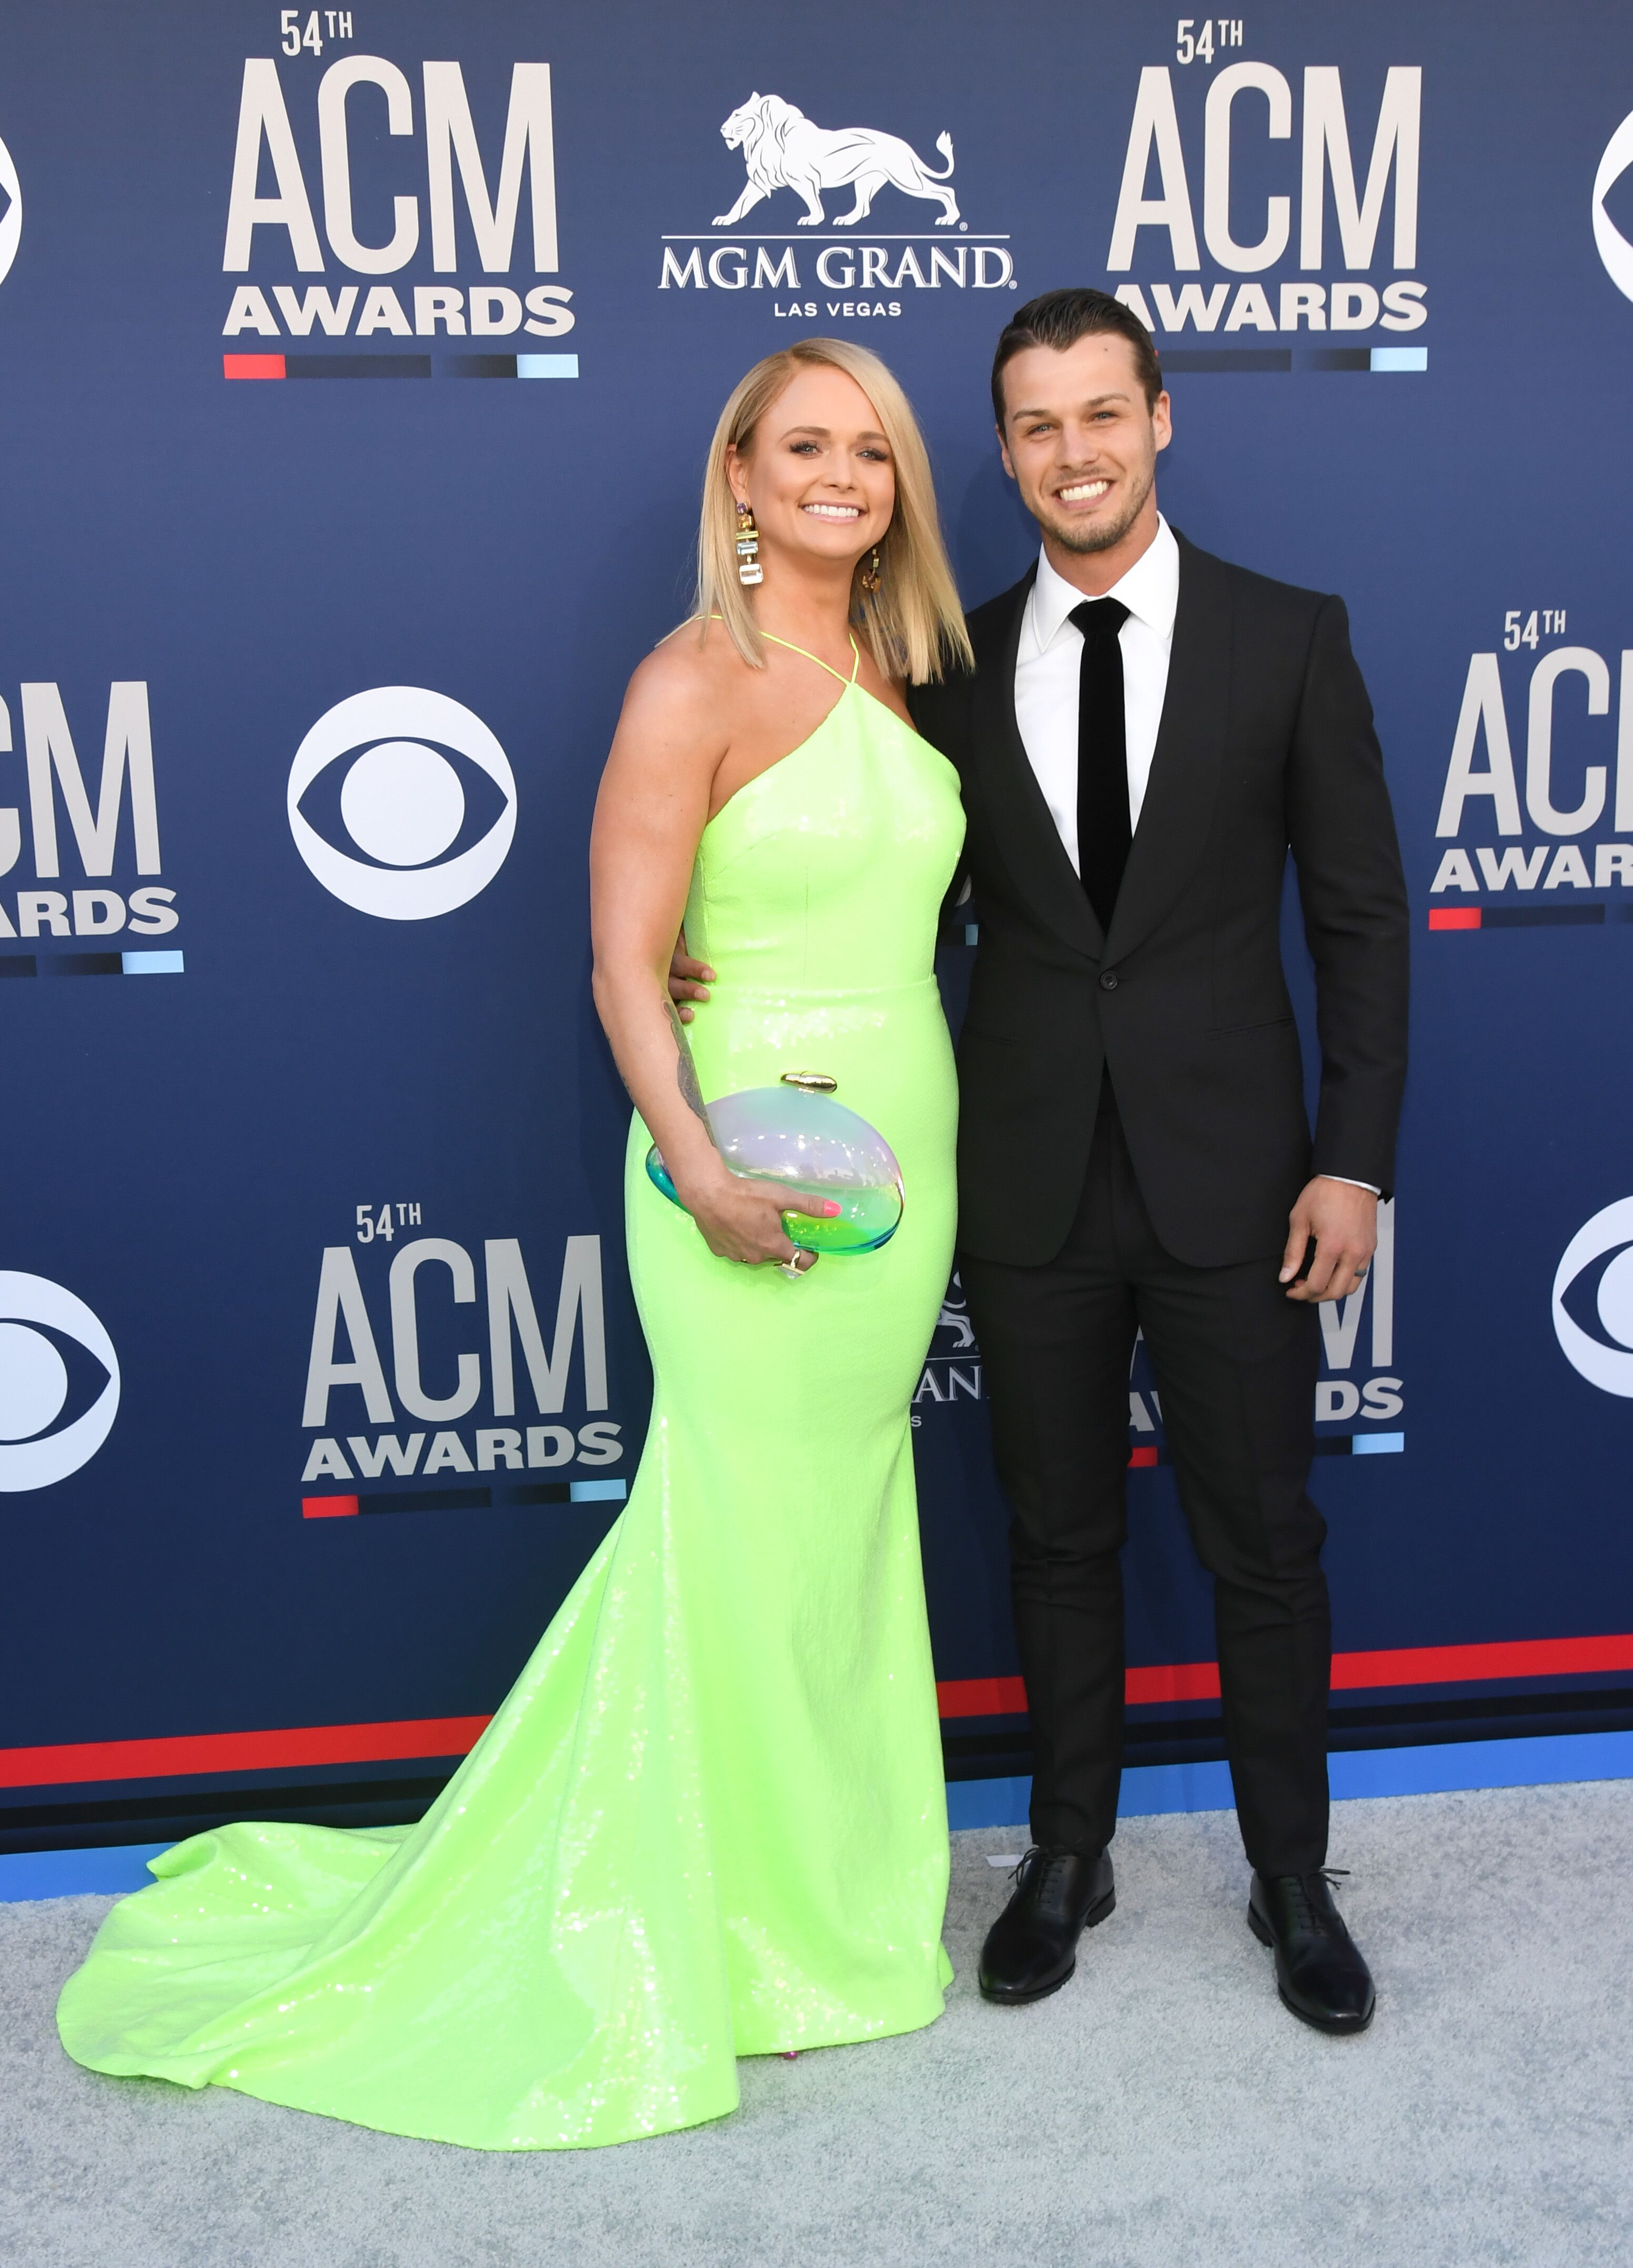 Miranda Lambert and Brendan McLoughlin a the 54th Academy Of Country Music Awards at MGM Grand Garden Arena on April 07, 2019 in Las Vegas, Nevada | Photo: Getty Images